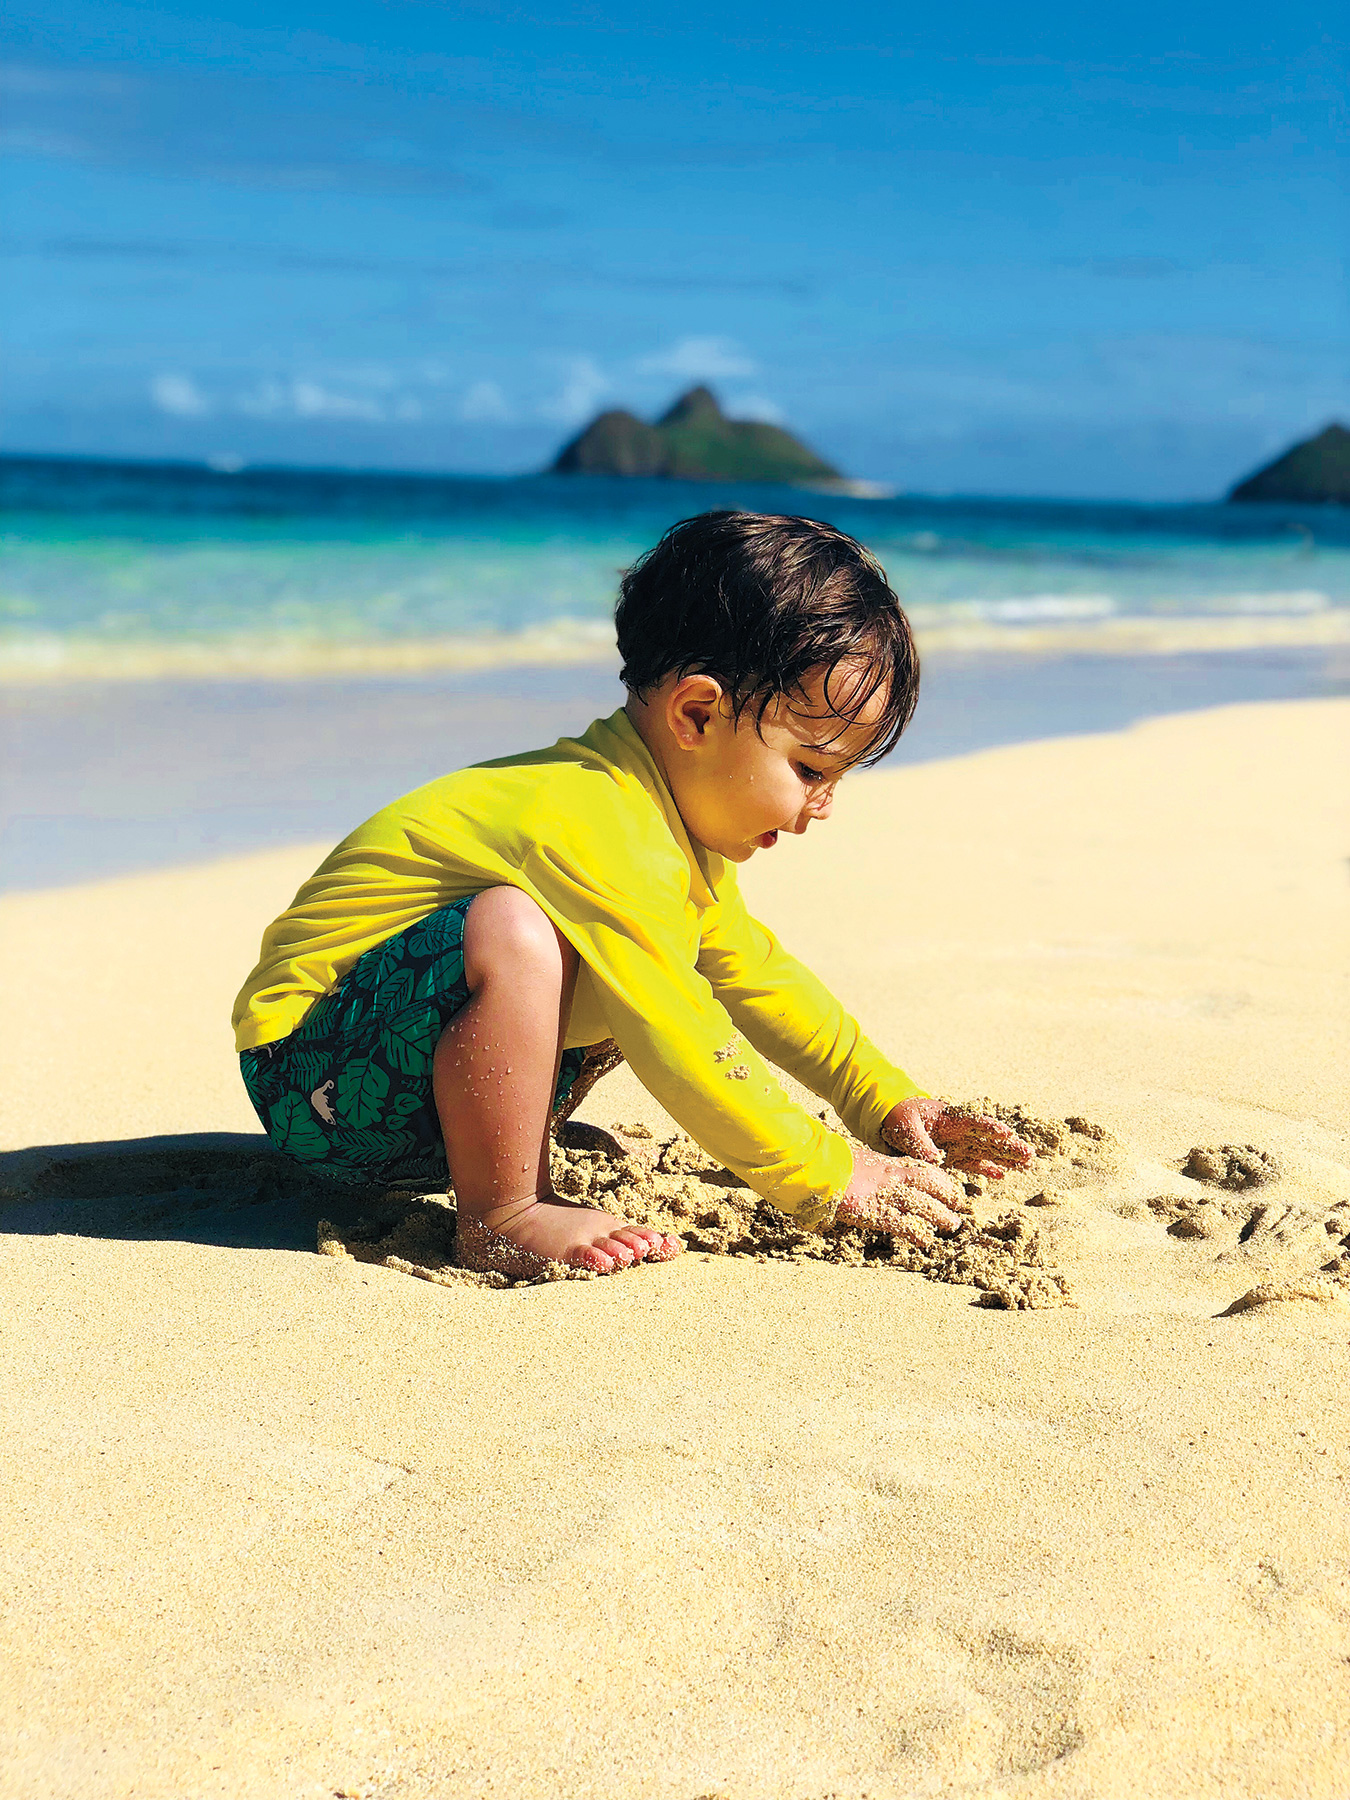 Boy playing in sand